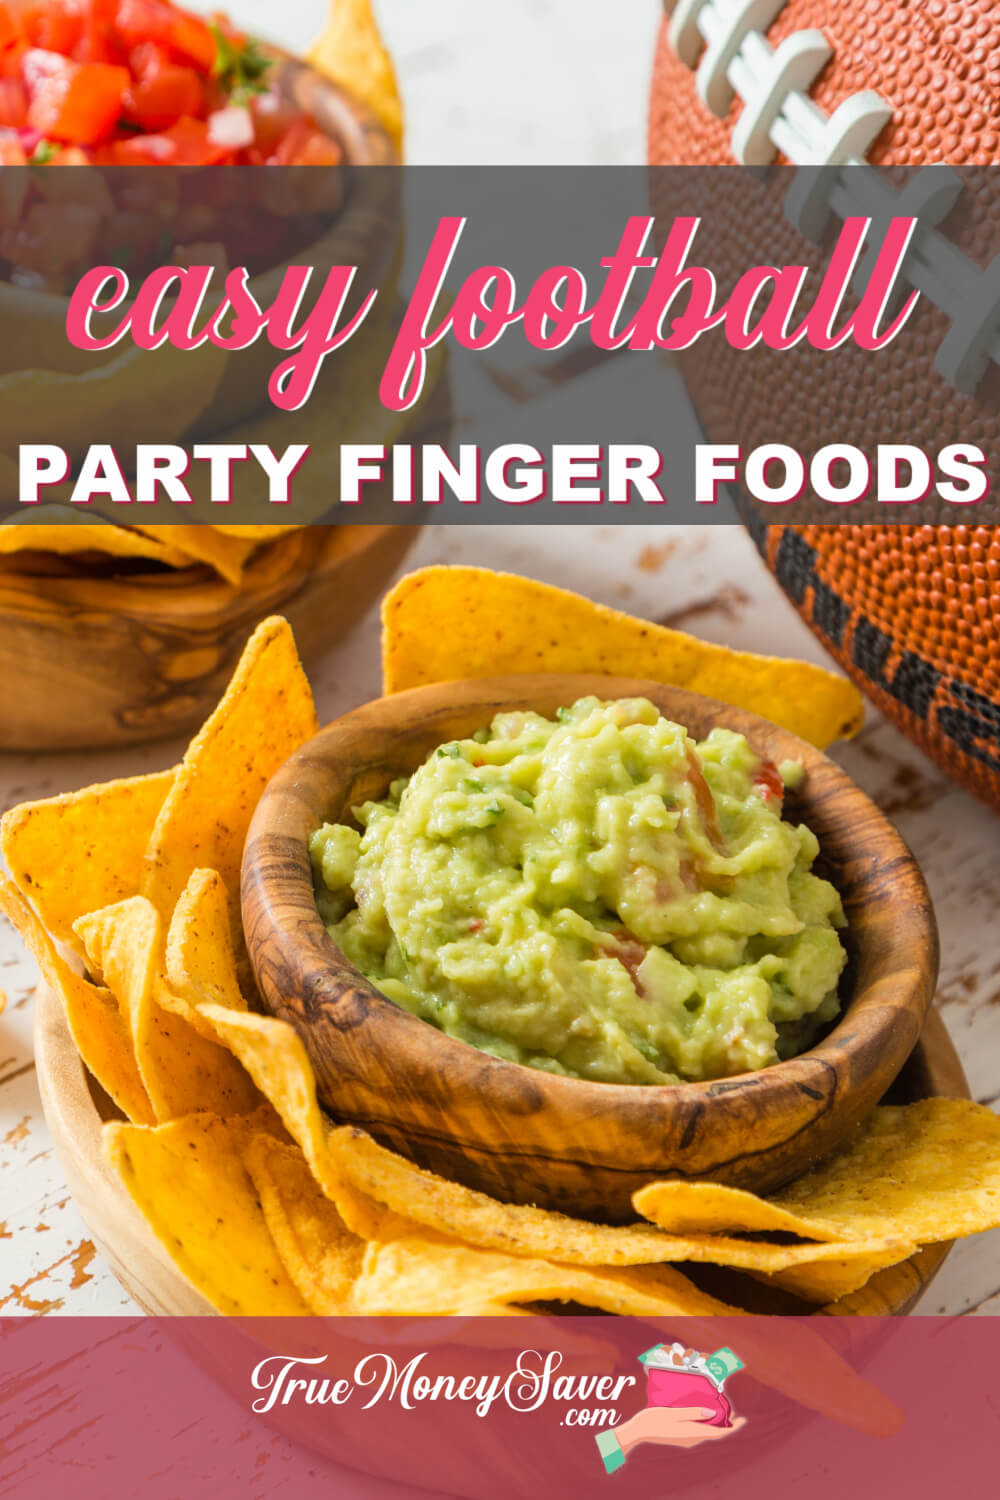 Easy Football Finger Foods You\'ll Want To Make This Year